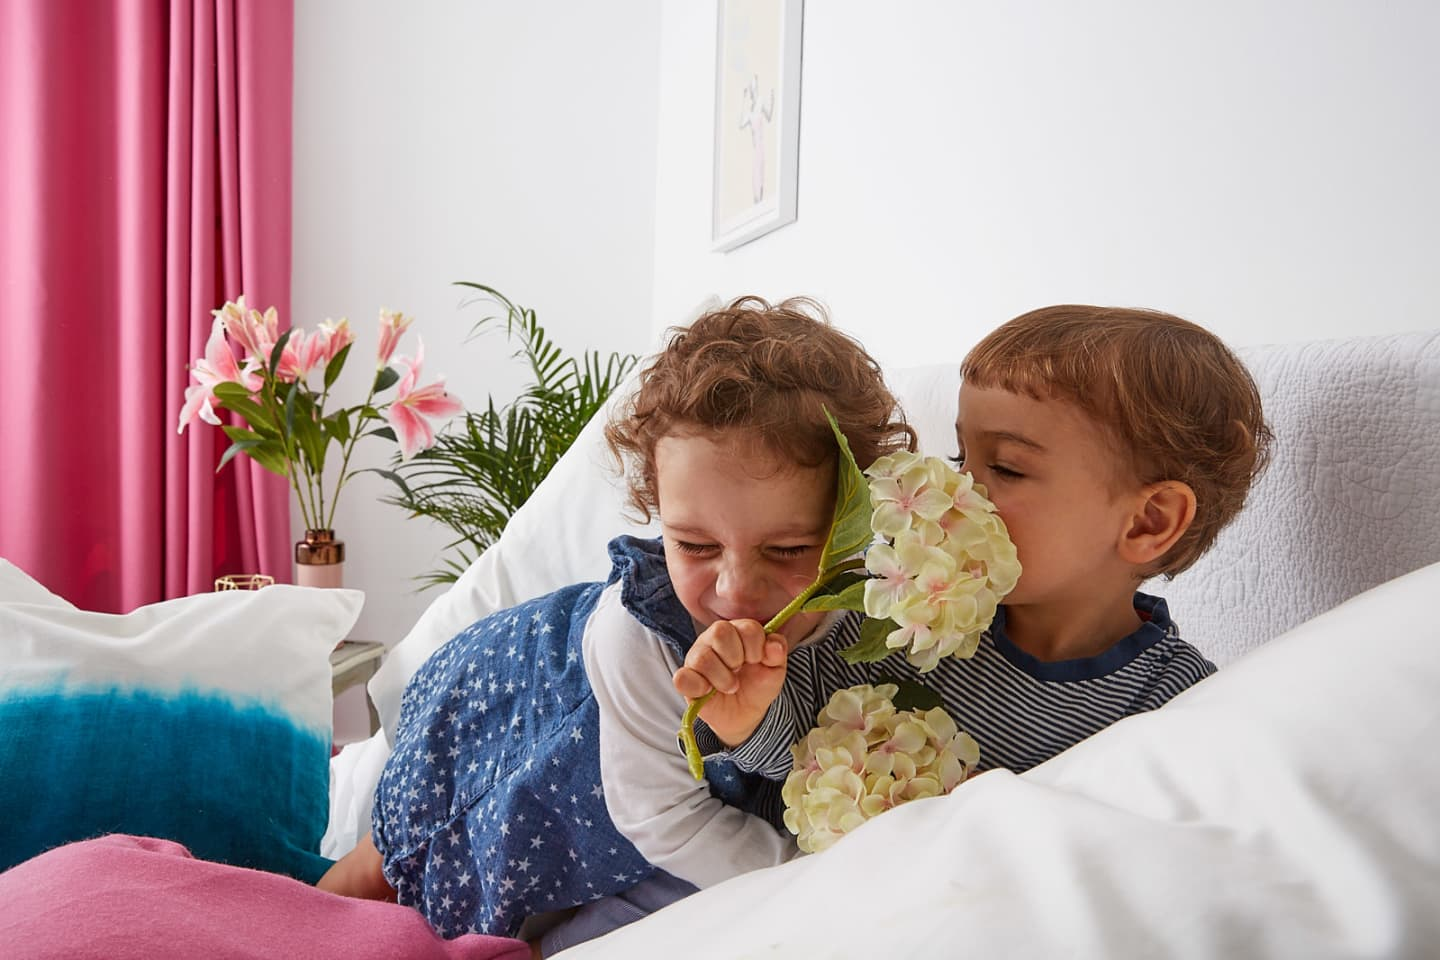 Children holding plants on a bed